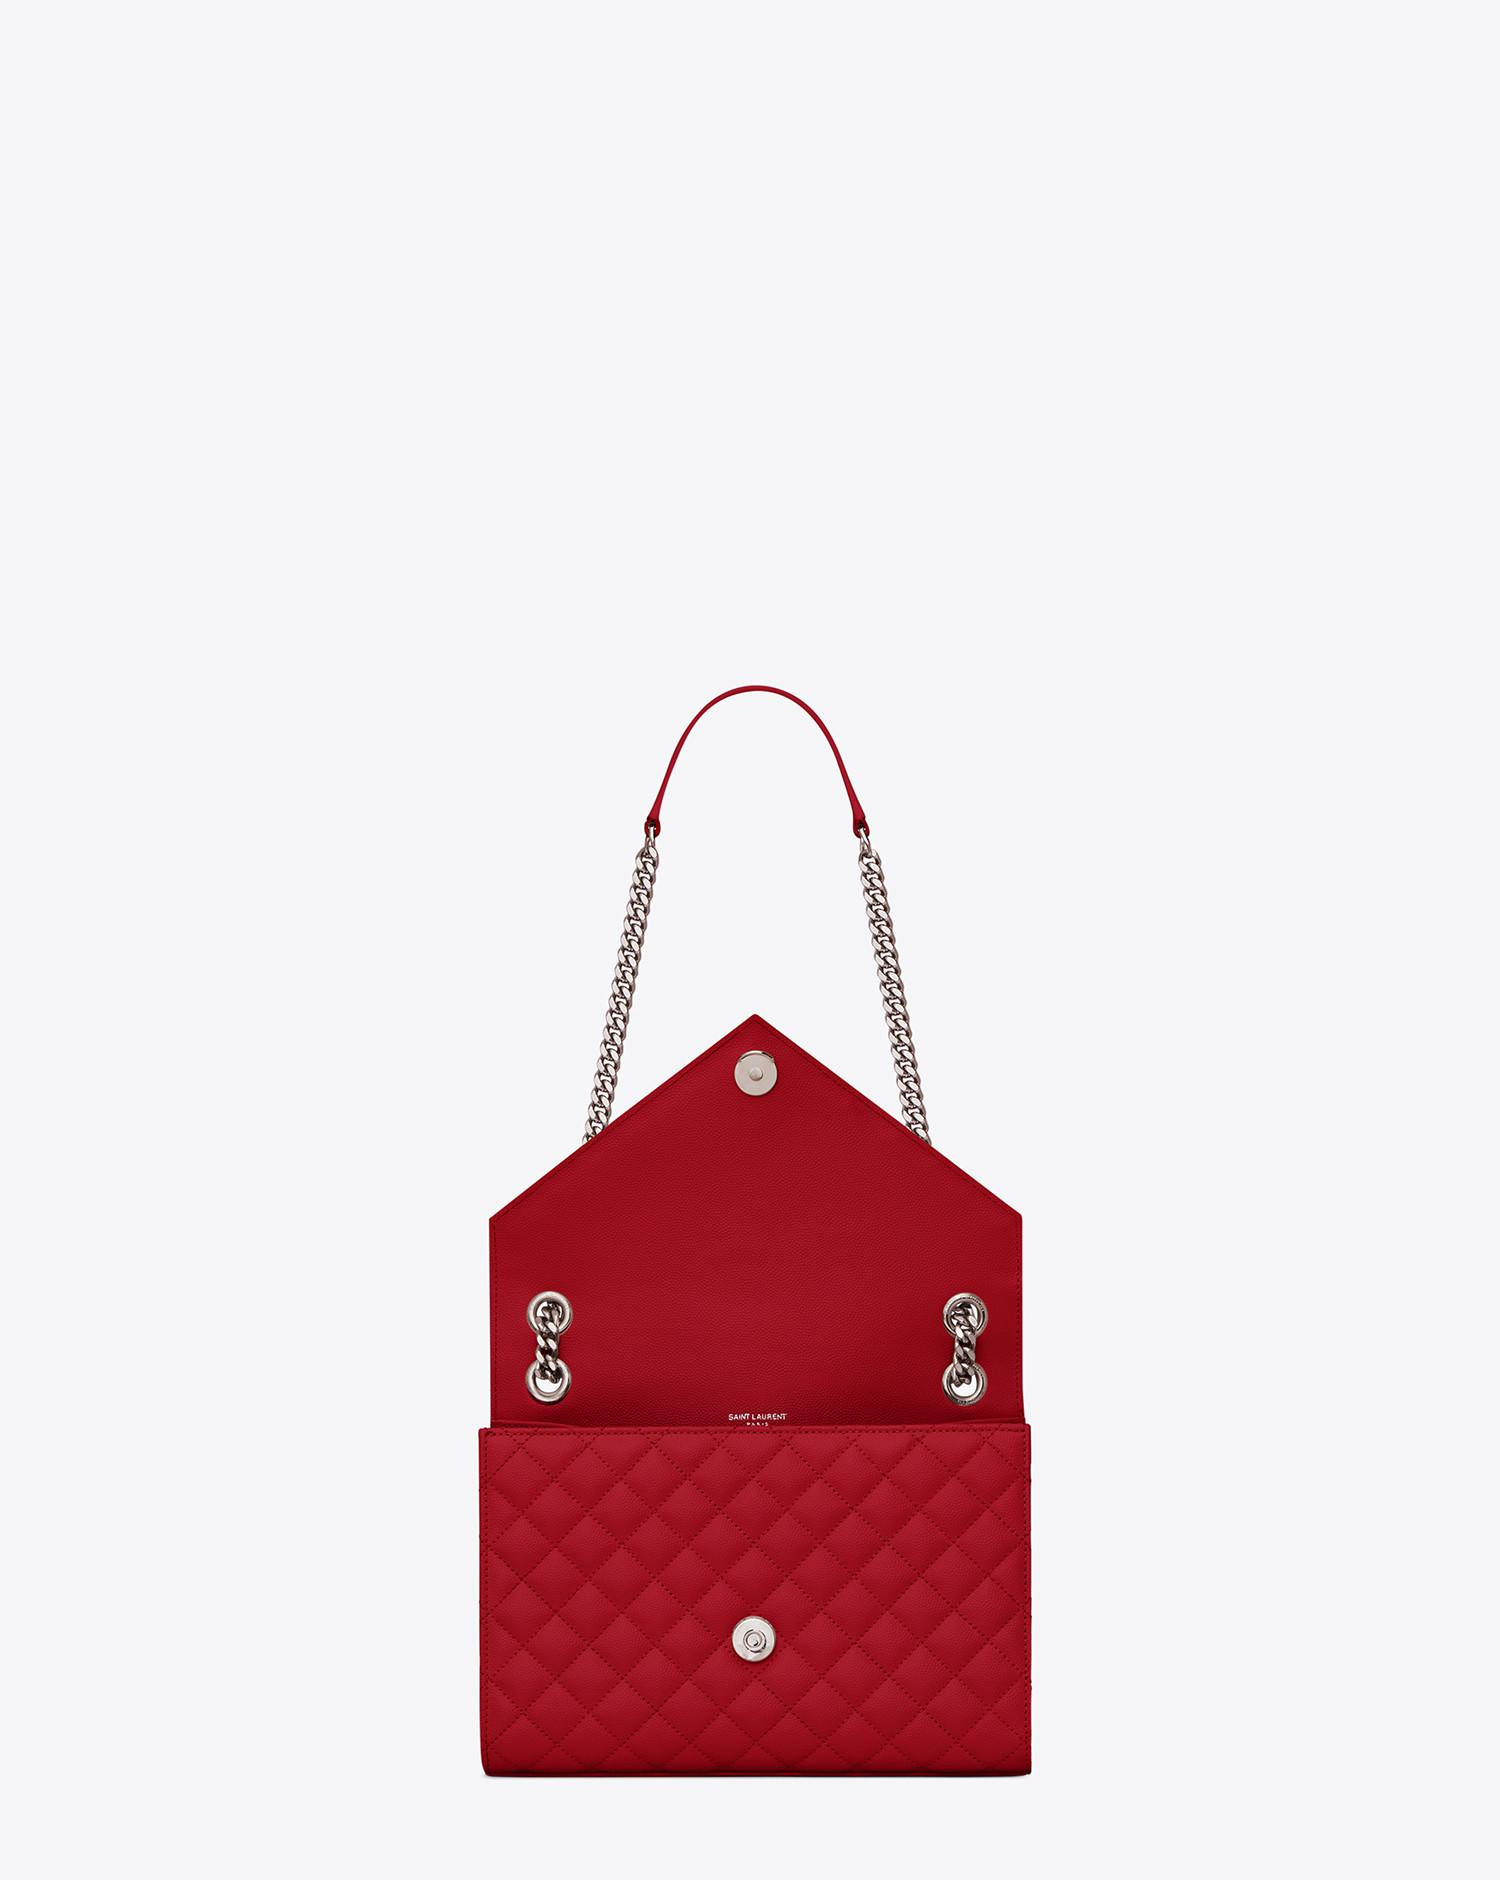 467d043115882 Saint Laurent - Red Envelope Medium Bag In Grain De Poudre Embossed Leather  - Lyst. View fullscreen